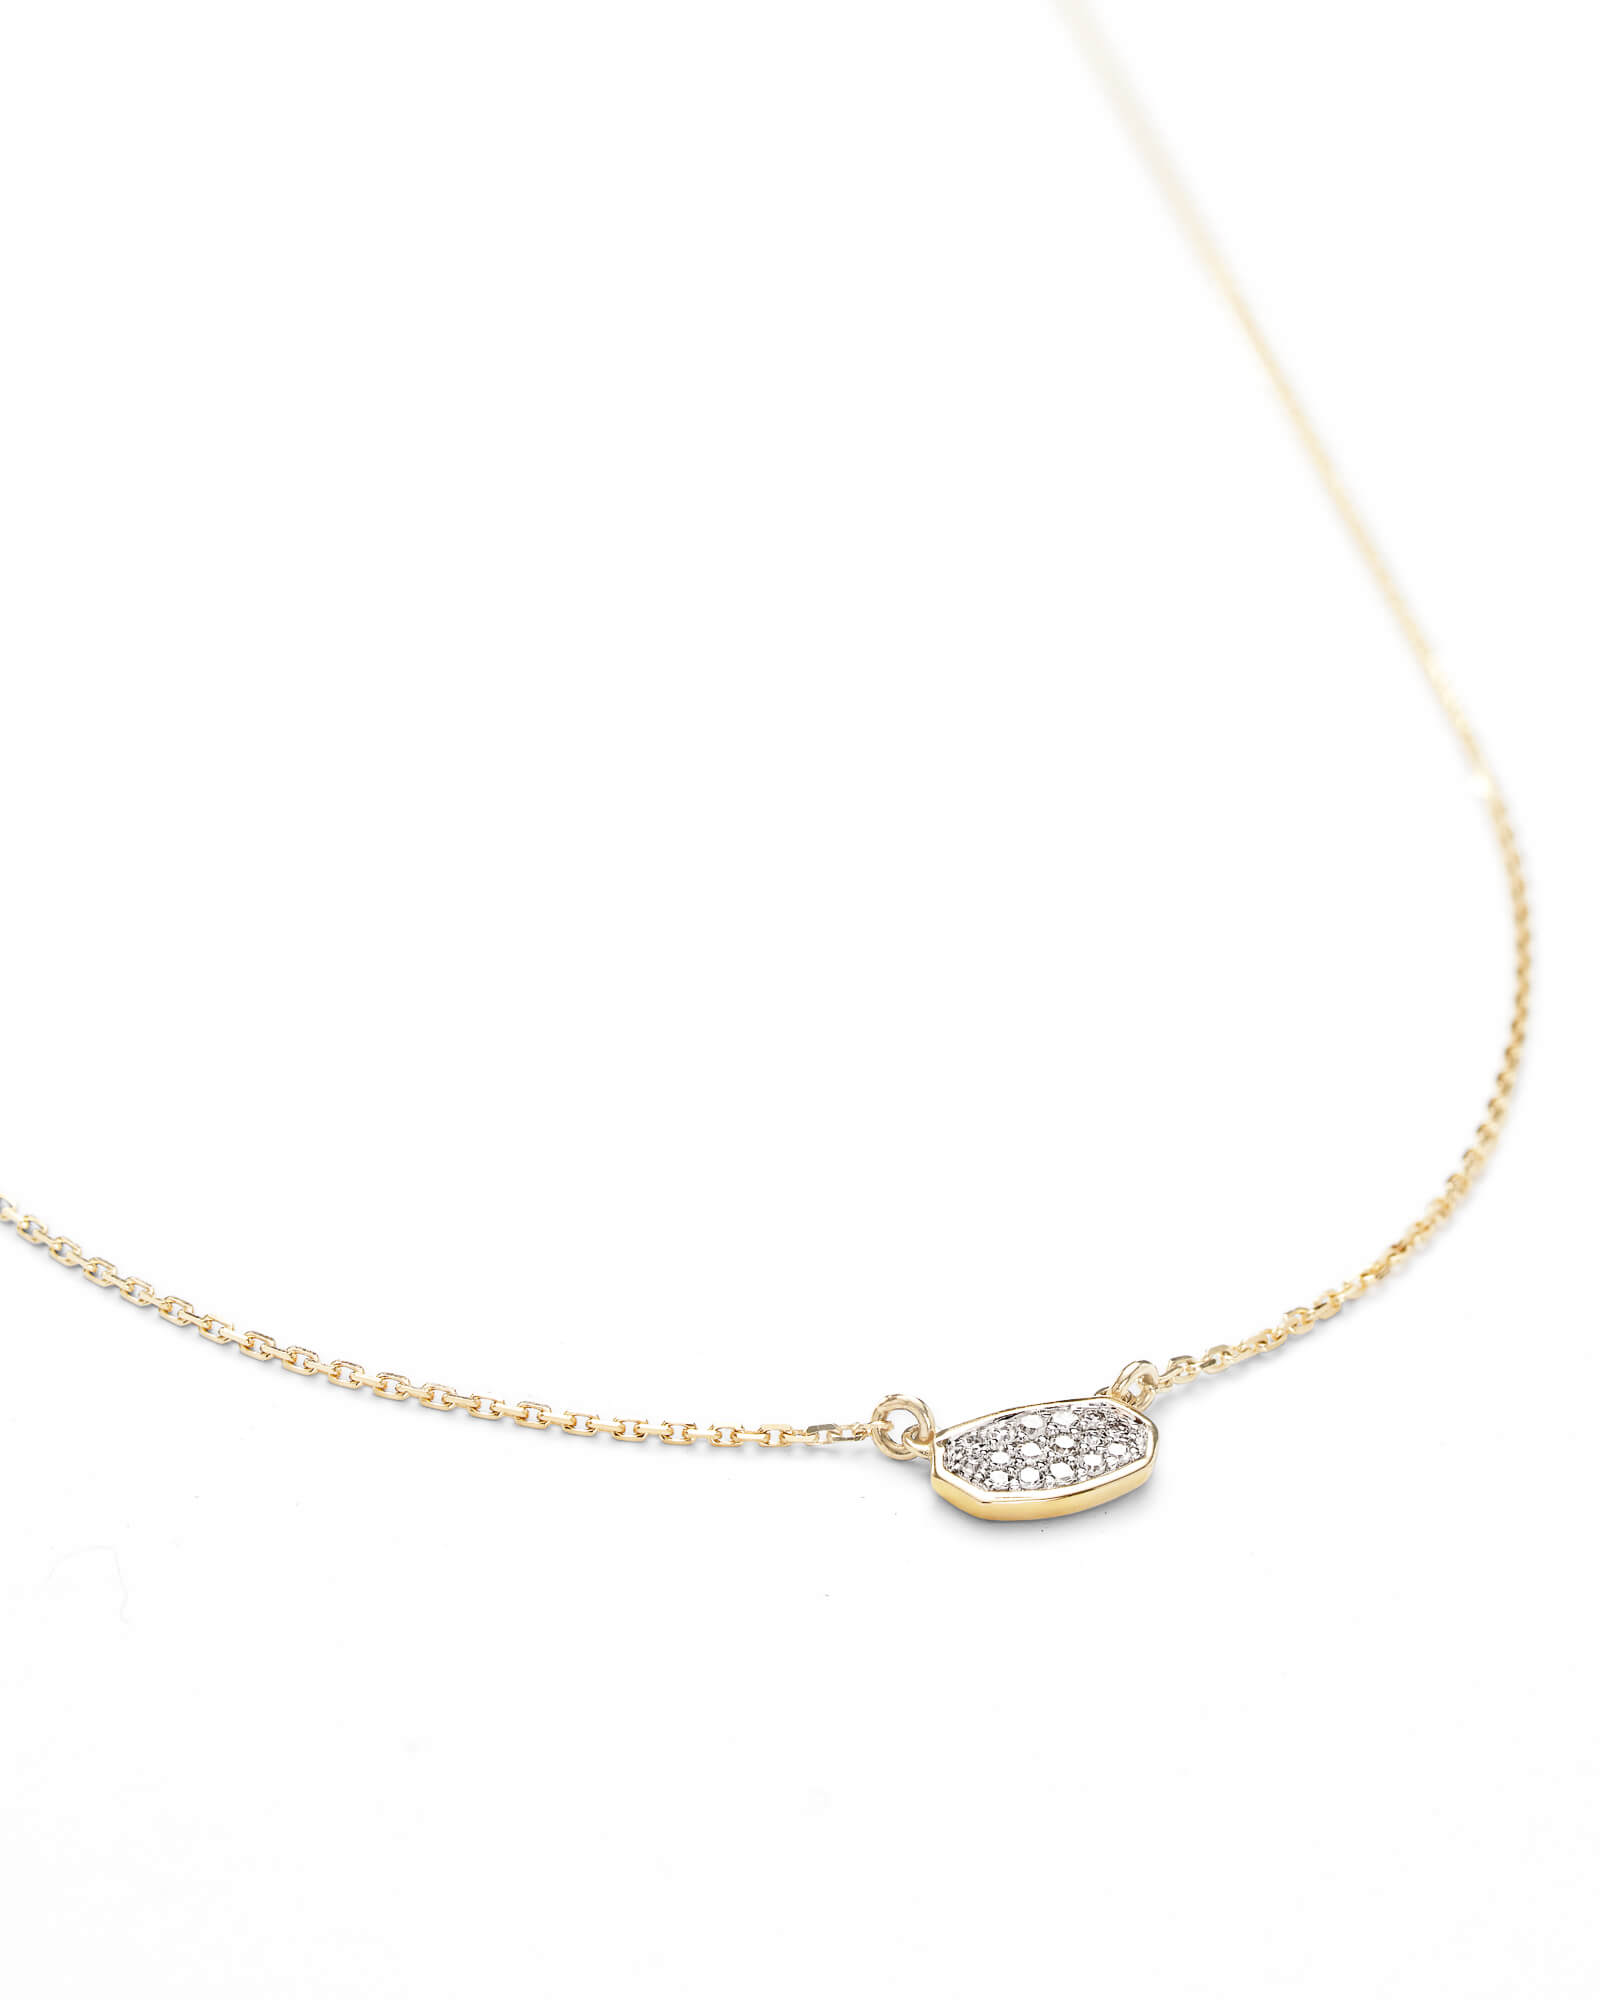 Marisa Pendant Necklace in White Diamond and 14k Yellow Gold